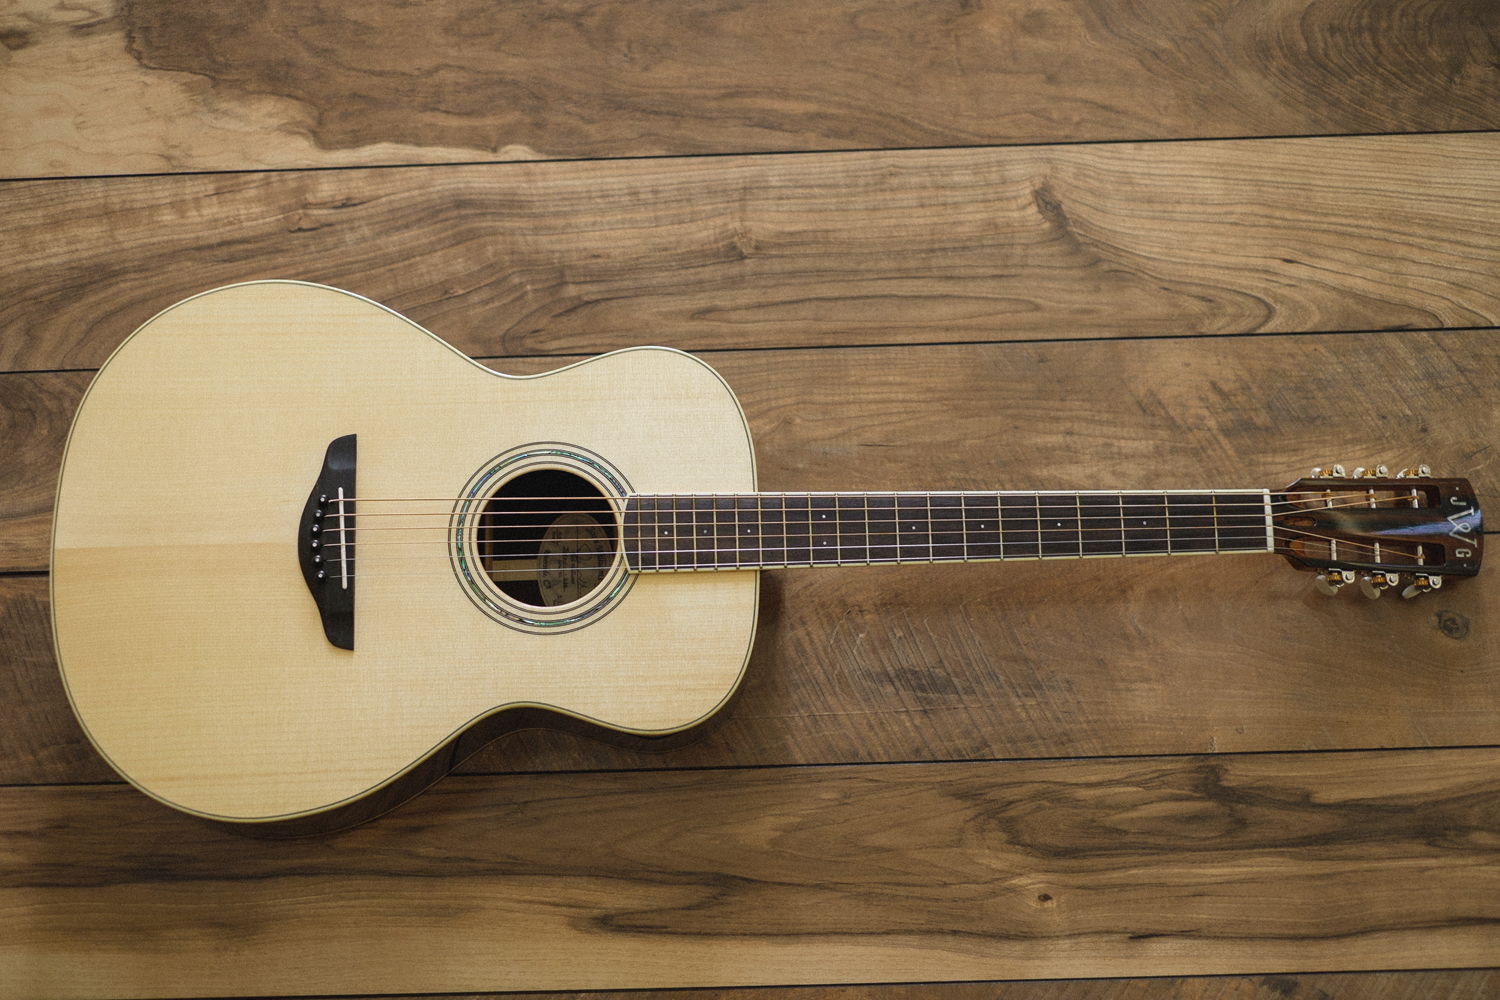 Small Jumbo   Considered the most versatile of the pack. Produces a big sound without the feeling of a big guitar. Very comfortable to play, that lends well to anything from Fingerstyle playing to big strumming.